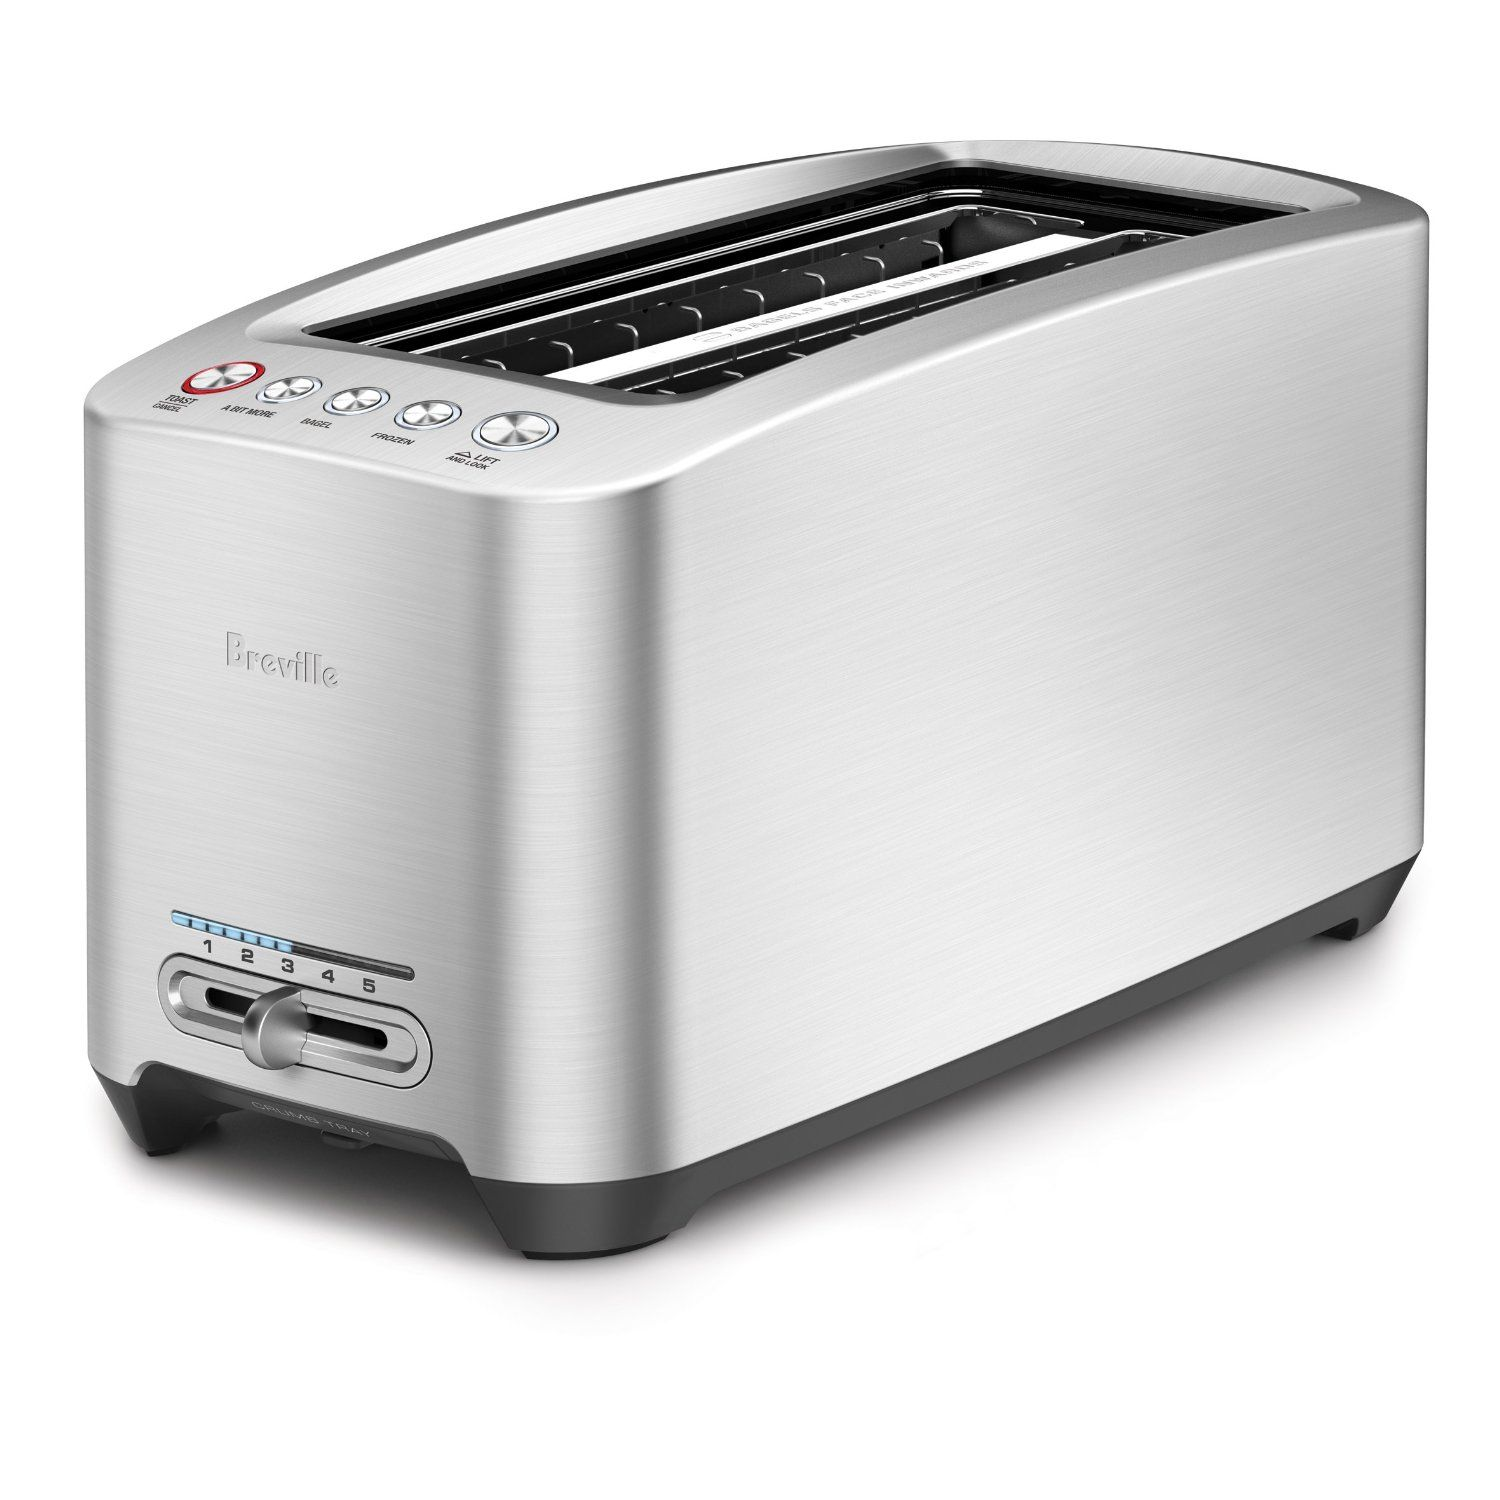 Breville Bta830xl Die Cast 4 Slice Long Slot Smart Toaster This Is An Amazon Affiliate Link Check Out The Image Breville Toaster Long Slot Toaster Toaster